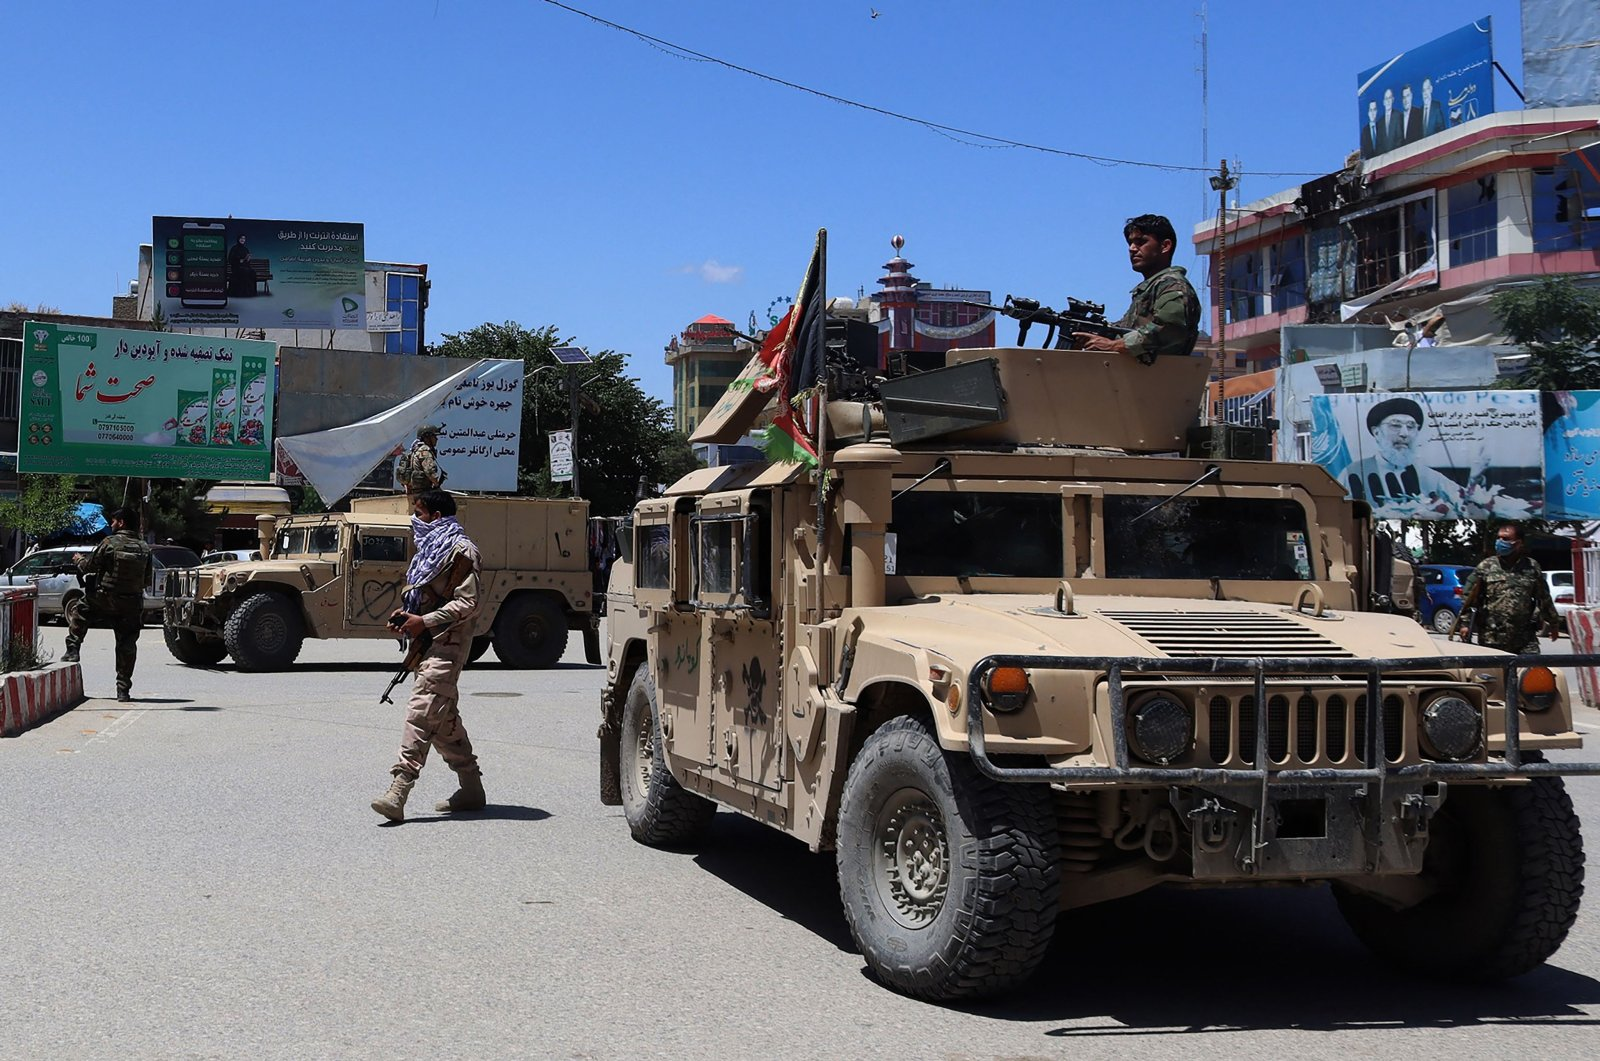 Afghan security forces sit in a Humvee vehicle amid ongoing fighting between Taliban militants and Afghan security forces in Kunduz, Afghanistan, May 19, 2020. (AFP File Photo)